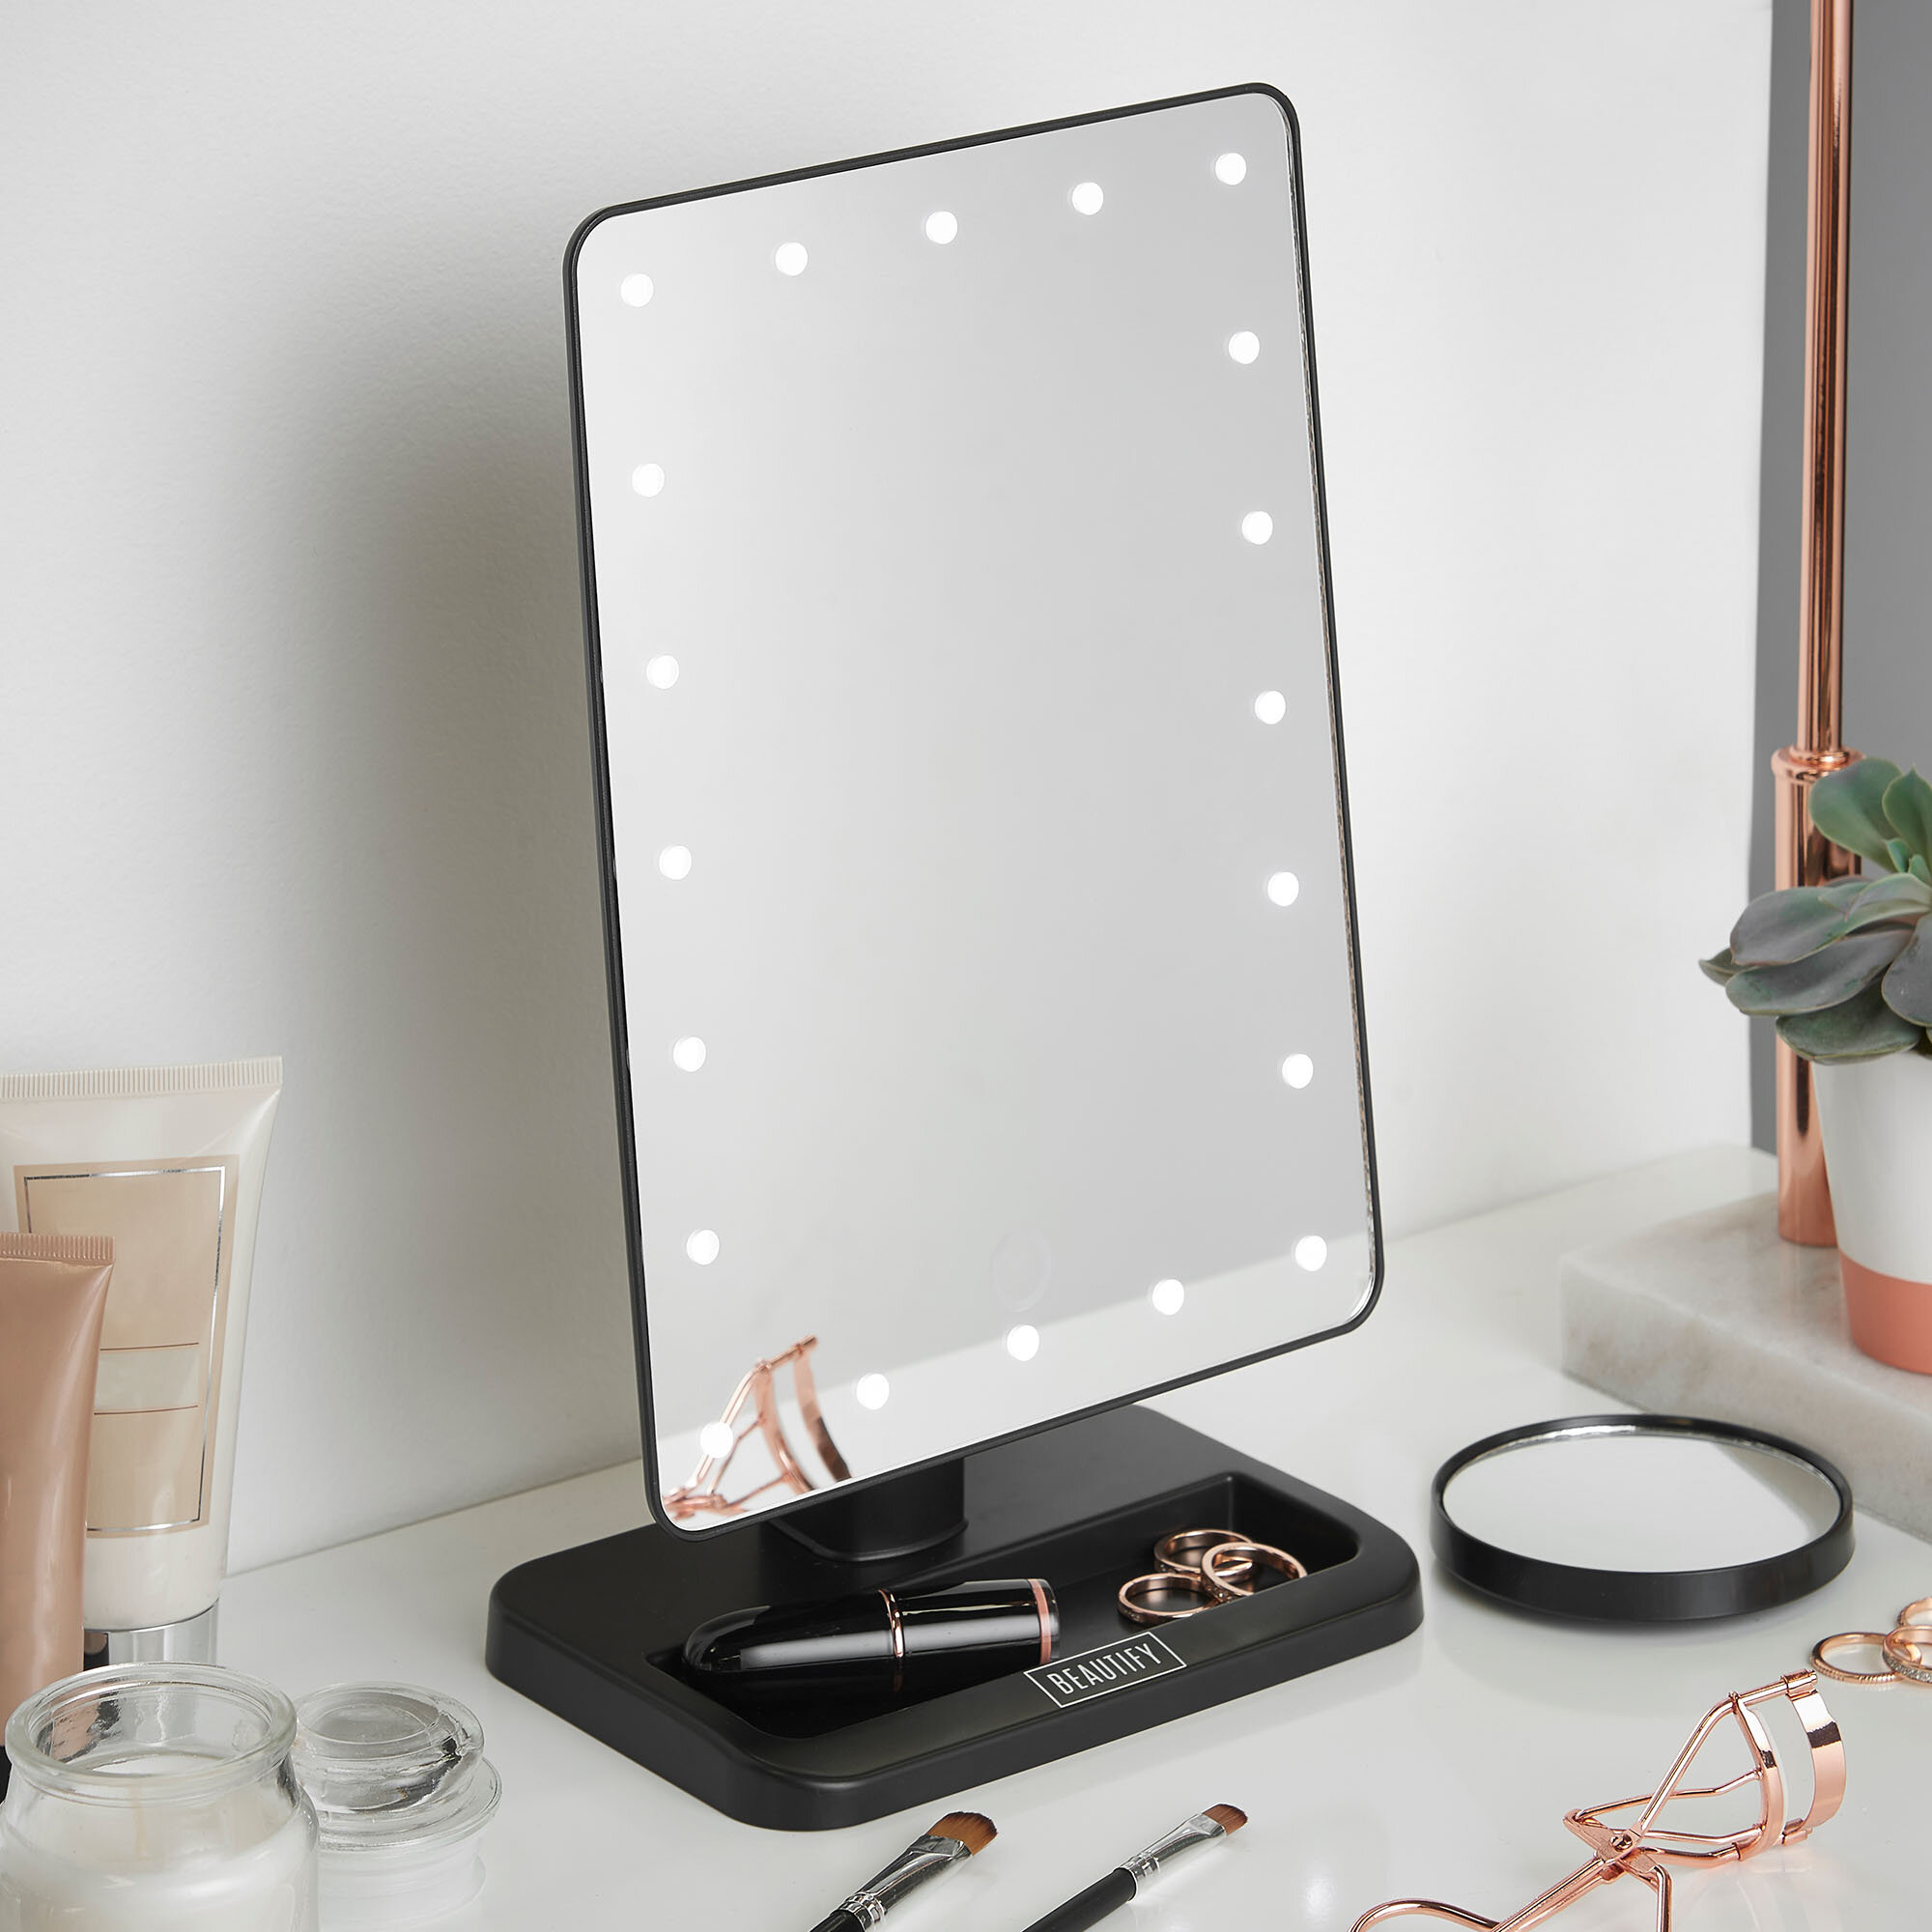 cosmetic products for supply degree shaving compact led dual light auto travel mirror illuminated makeup beauty trifold portable lighted magnifying with herwiss off rotation soft vanity power